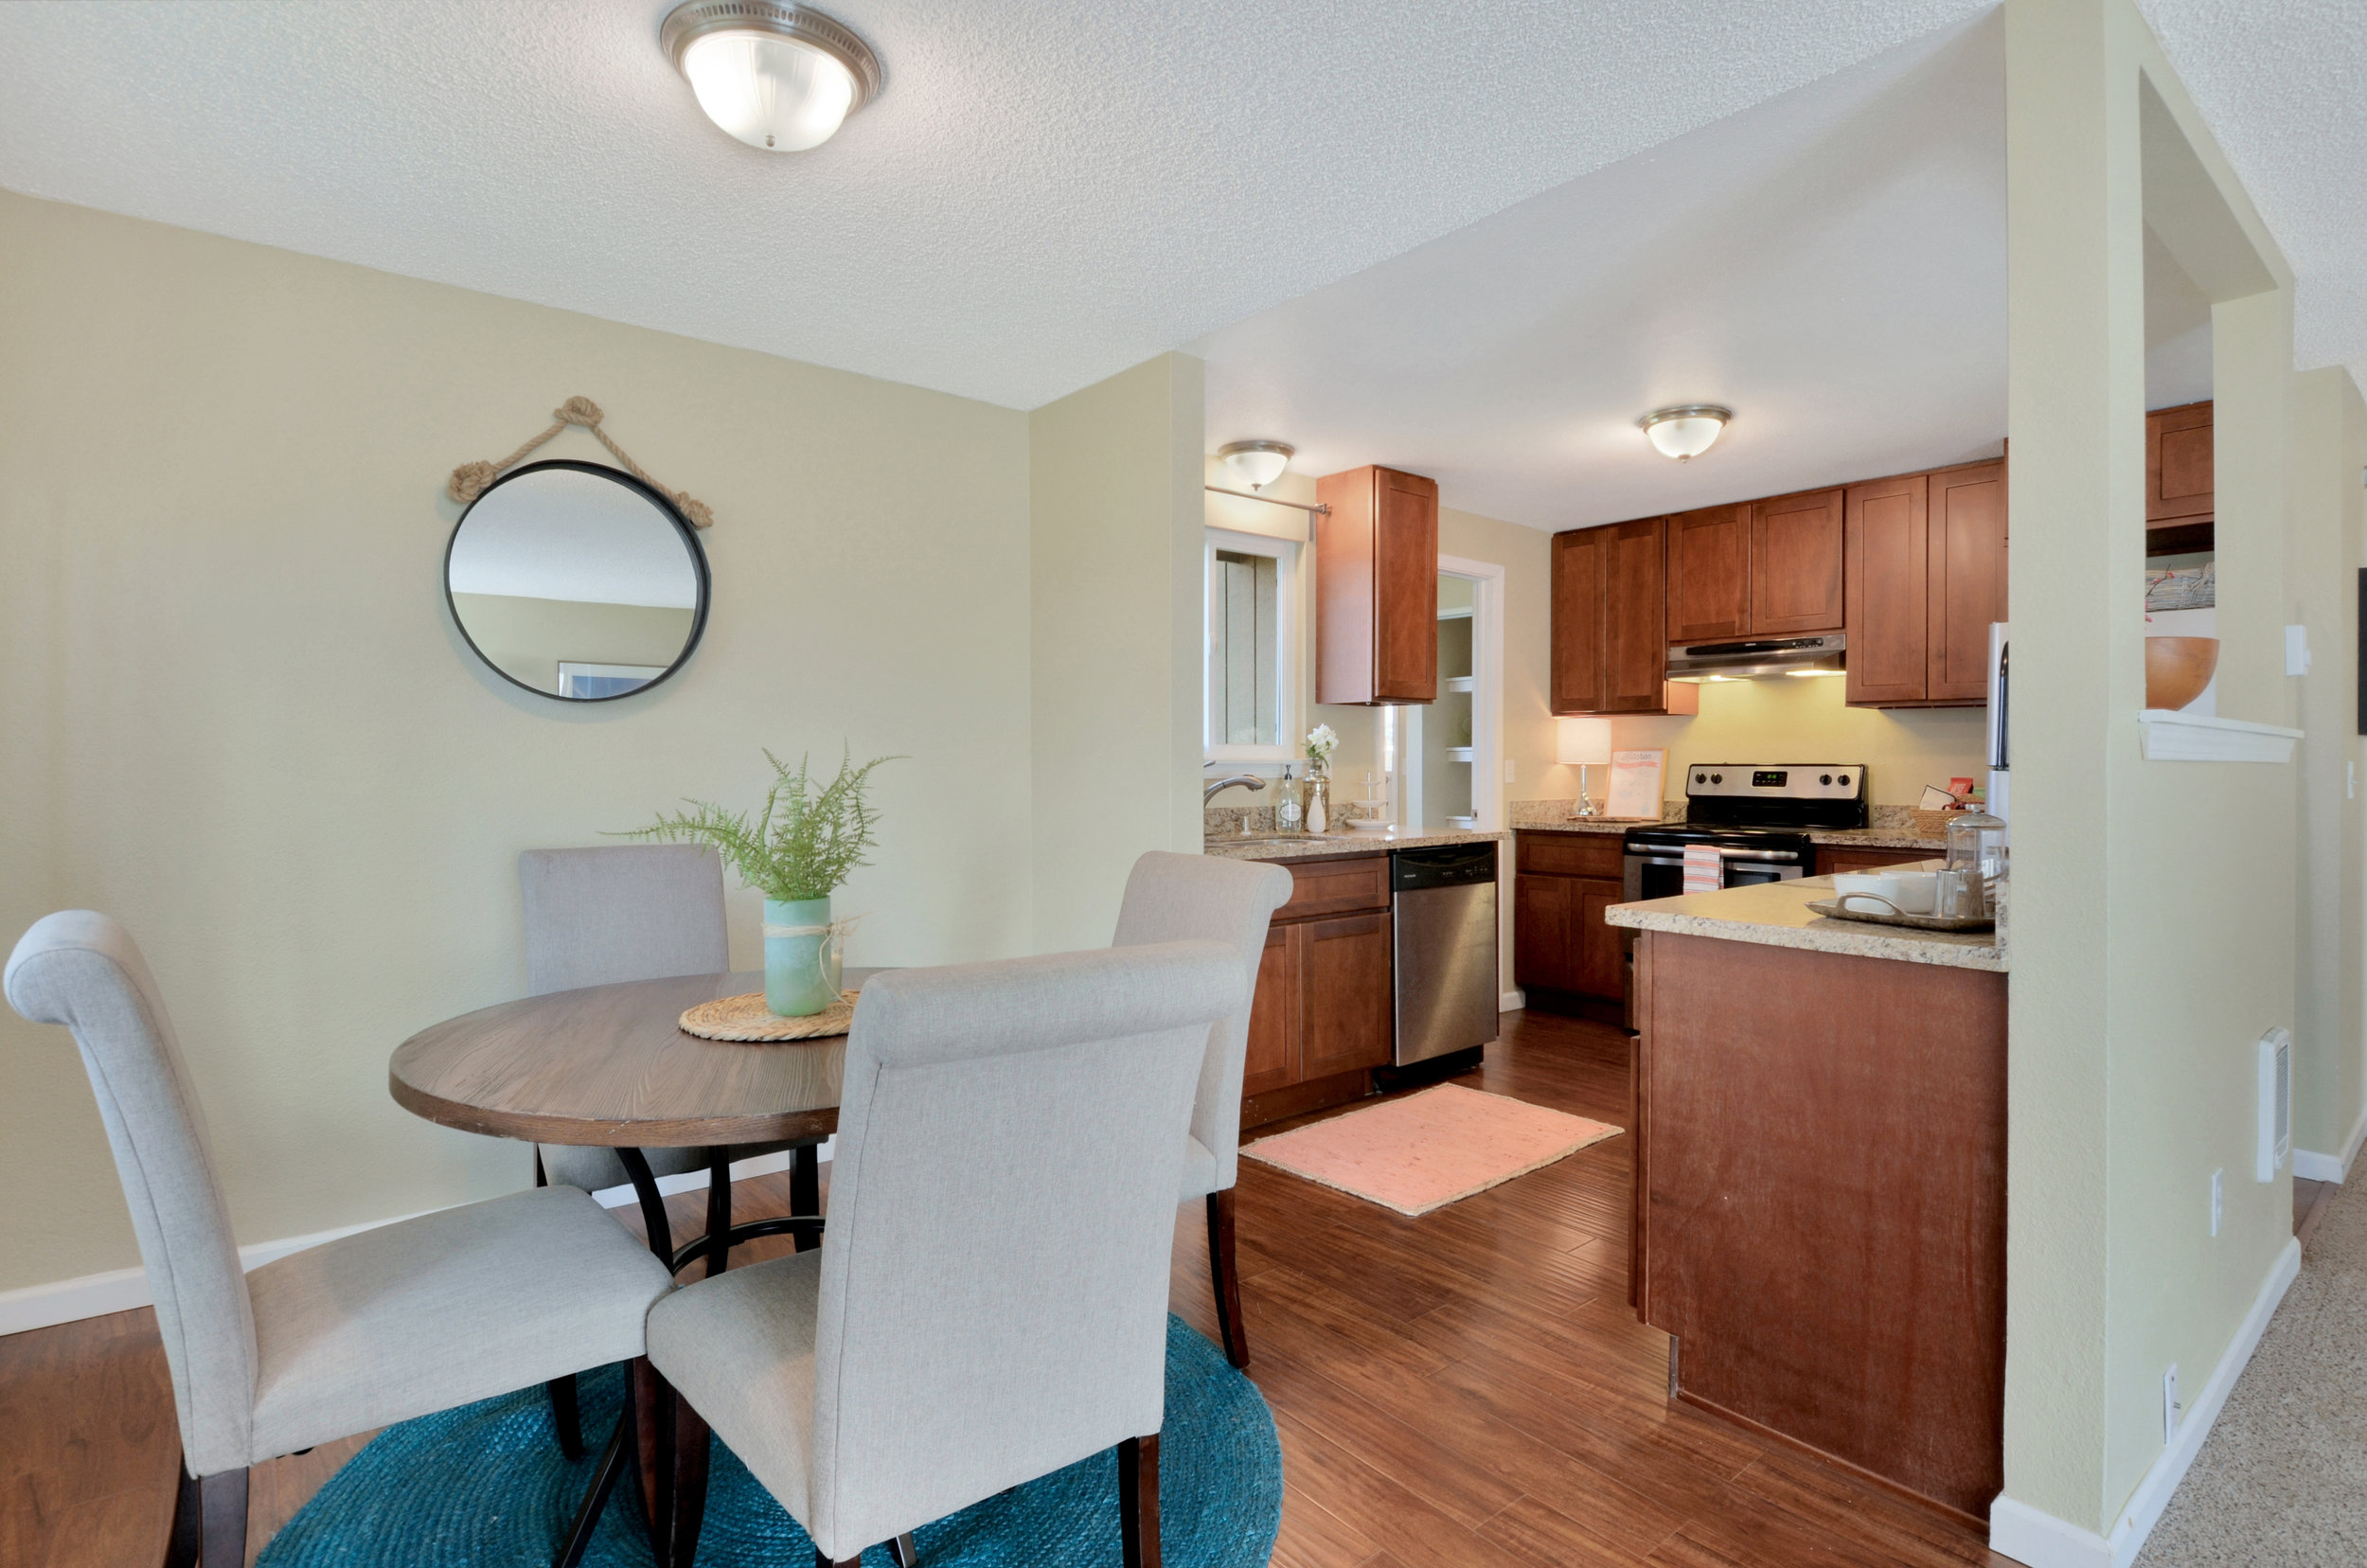 Dining and kitchen are pleasantly connected for cozy, casual meals. You'll notice an opening out into the laundry and pantry area just past the dishwasher.